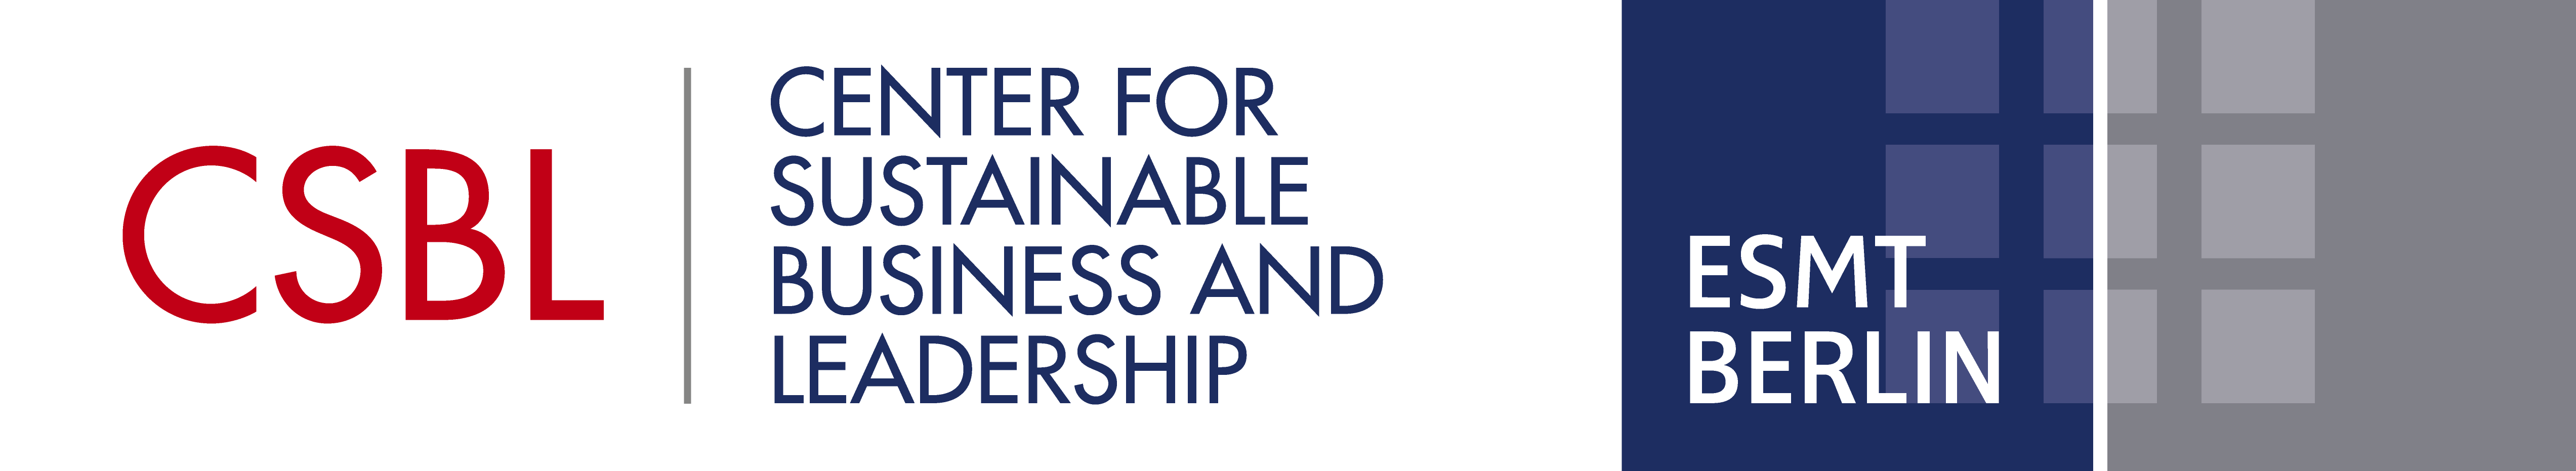 Logo of the Center for Sustainable Business & Leadership at ESMT Berlin